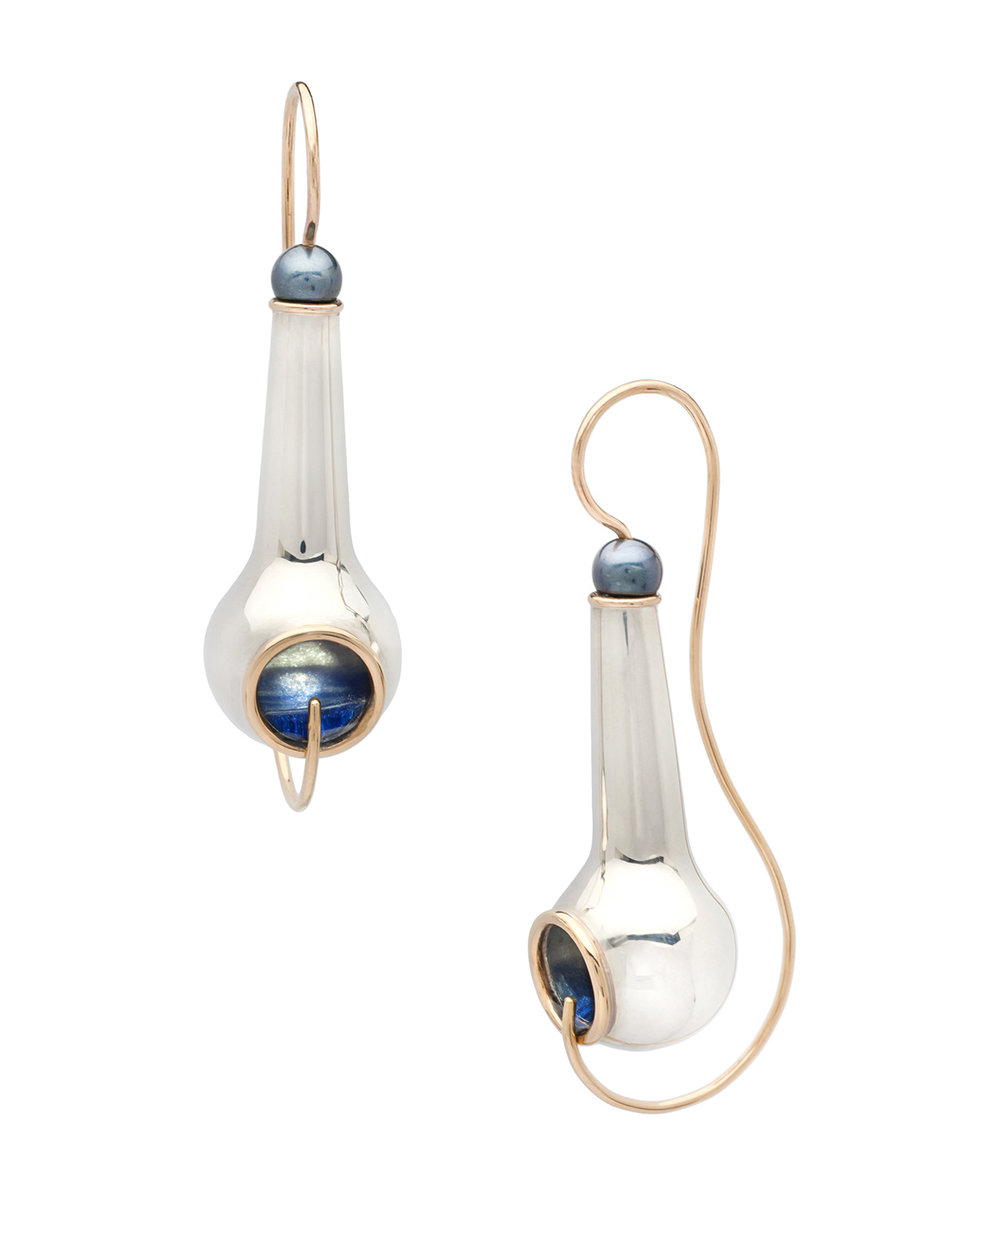 Hush - Earrings | 2016Sterling silver, 14k yellow gold, freshwater pearl, resin5.3H x 1.5W x 2D cm